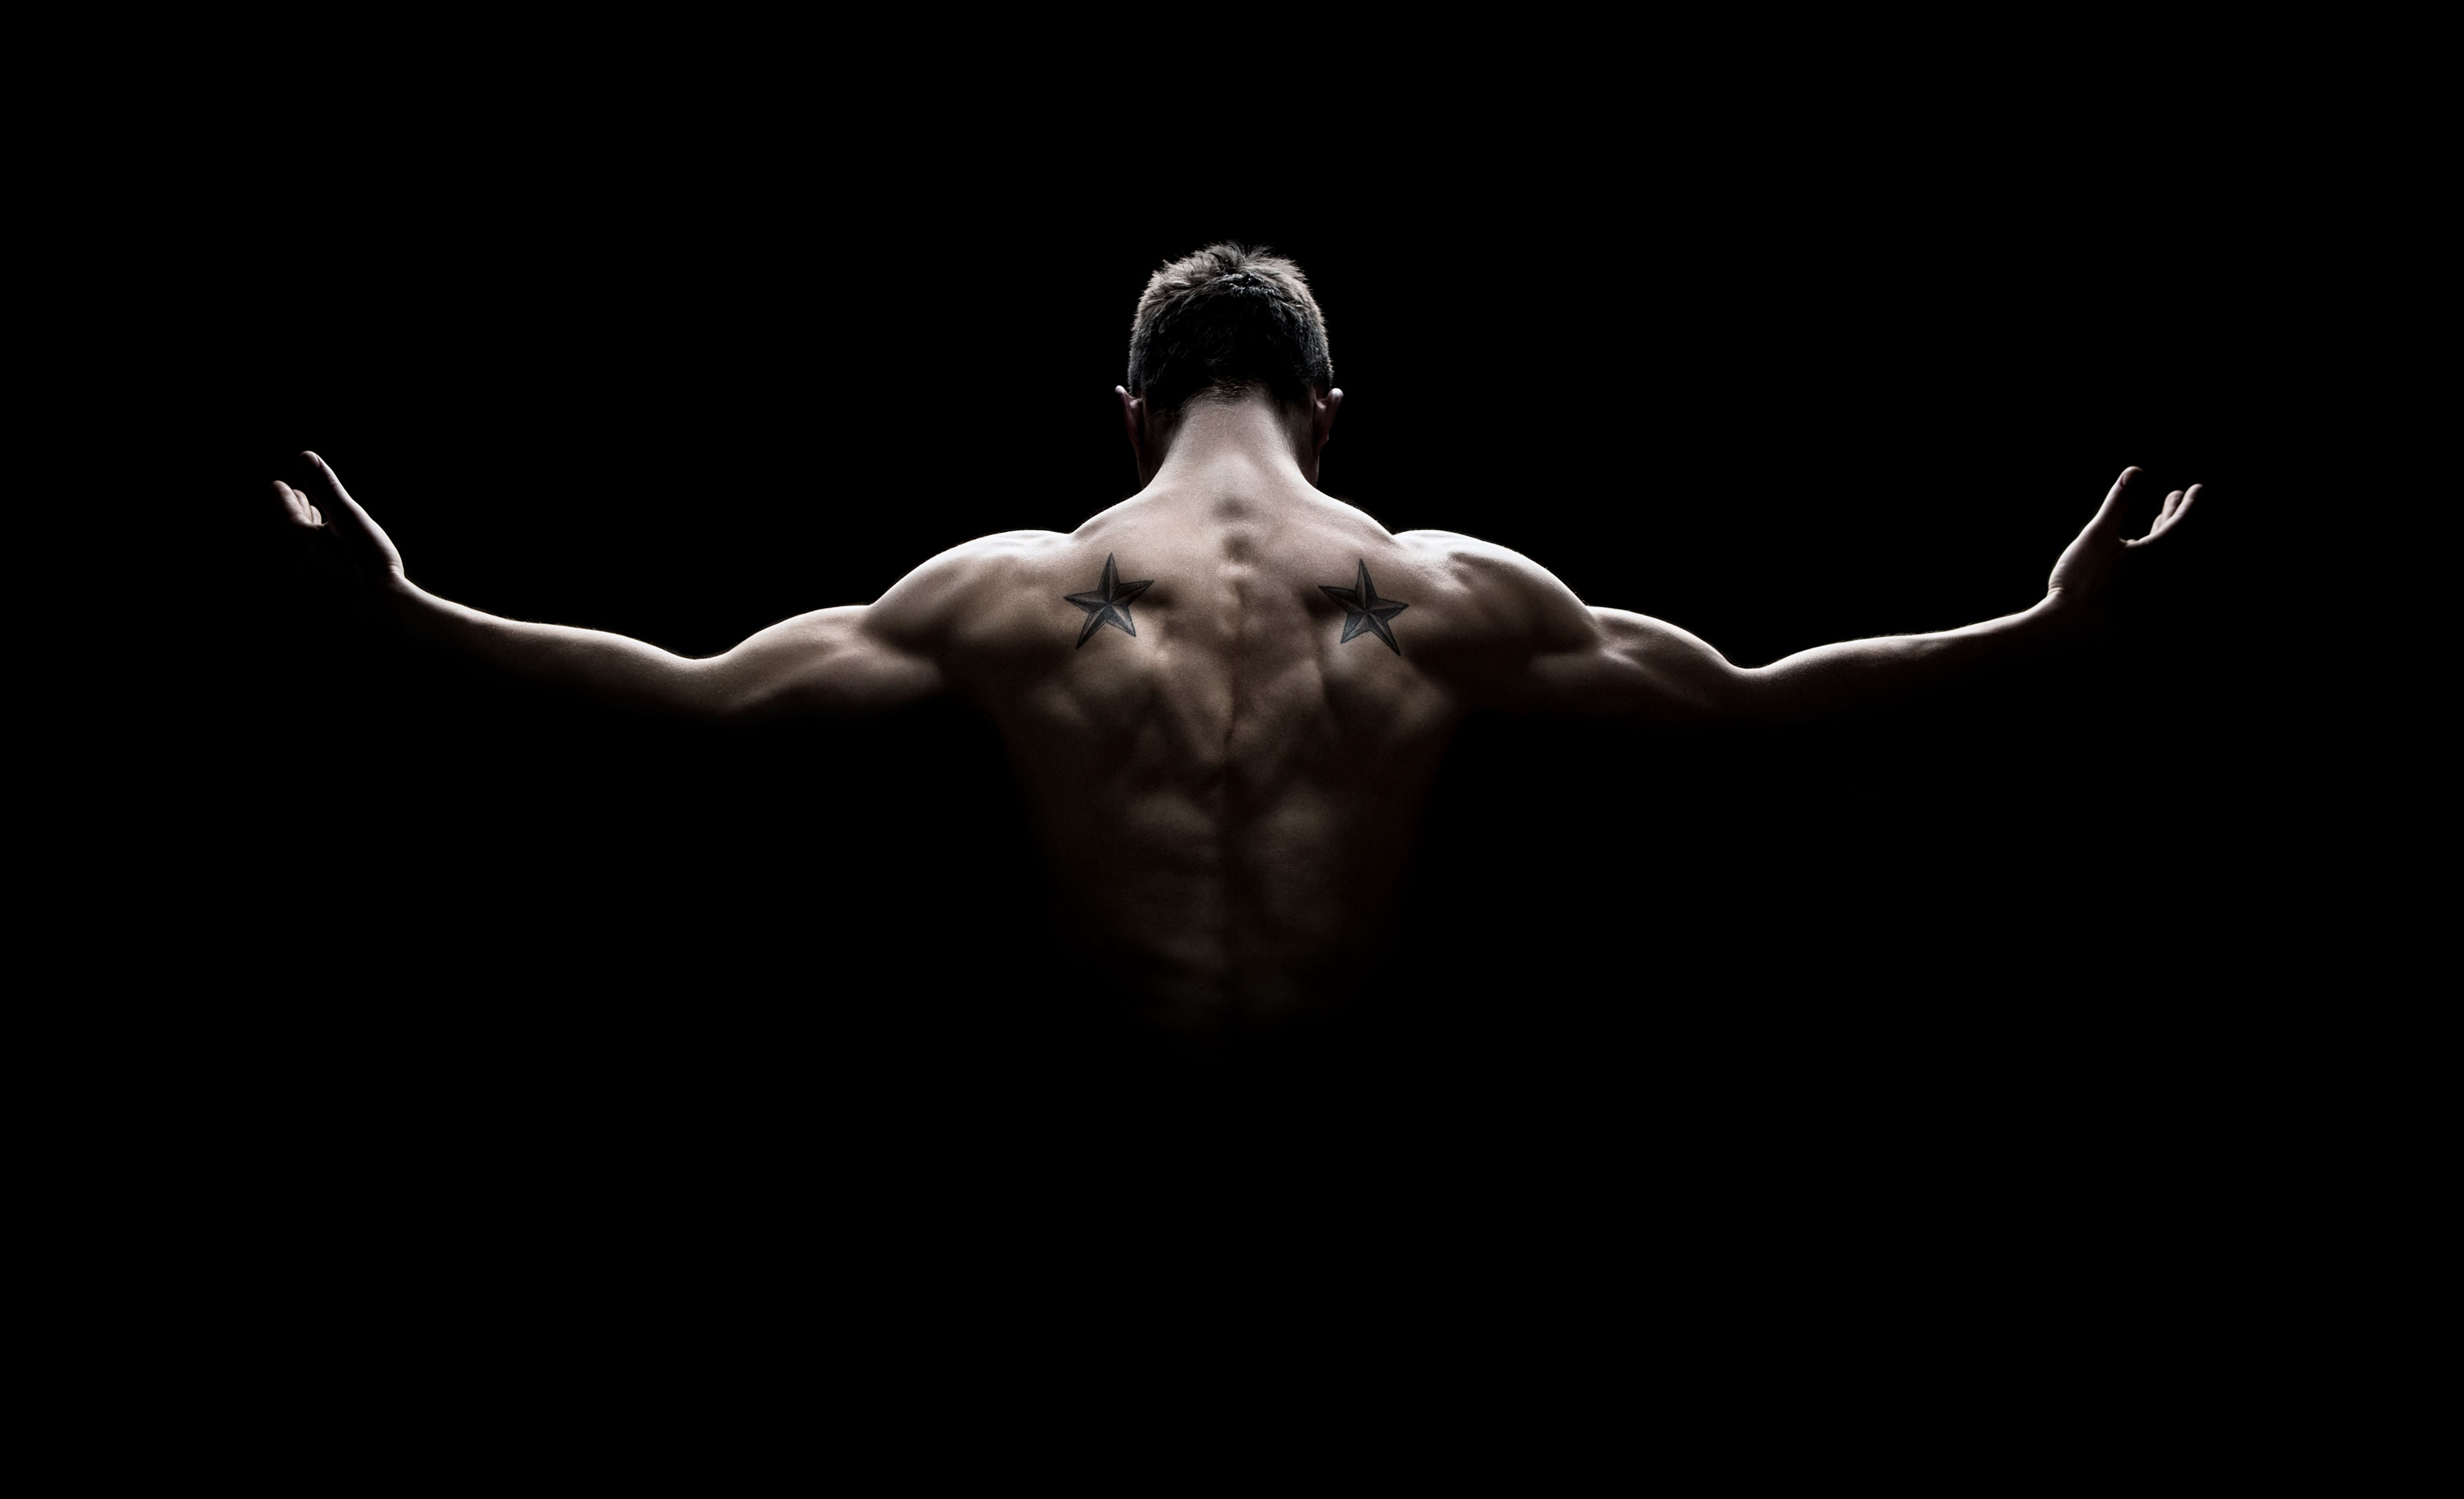 Wallpapers Bodybuilder, Muscles, 5K, Lifestyle,